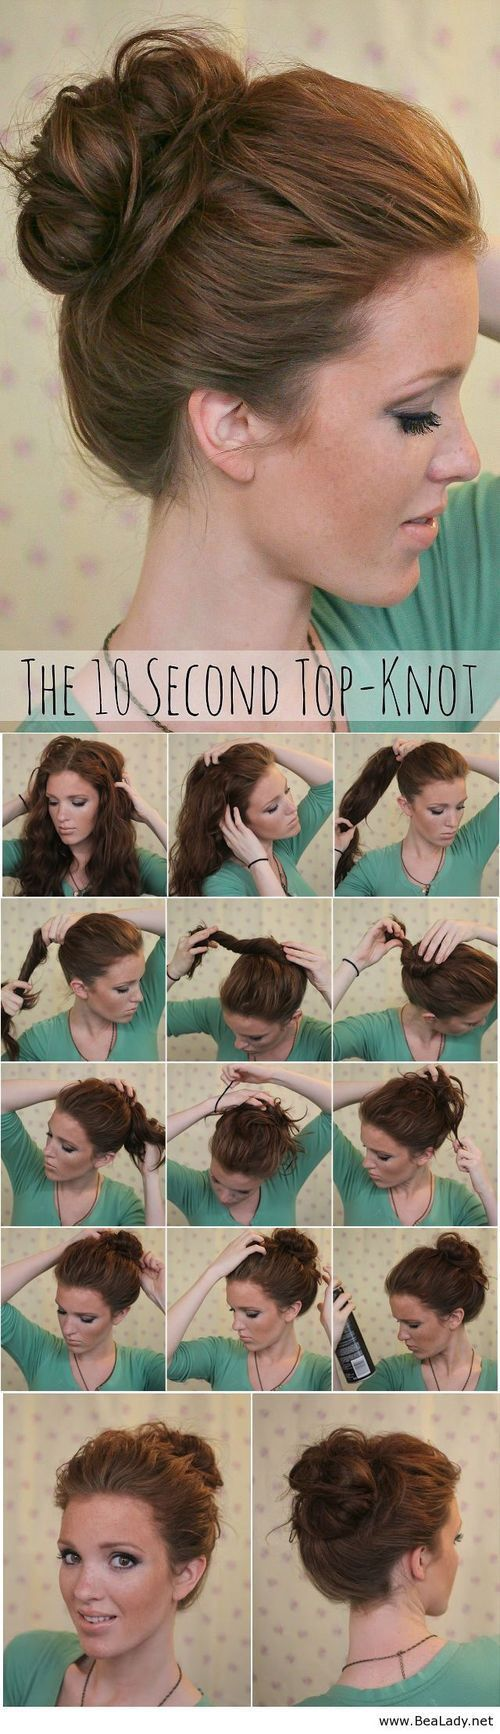 10 Second Topknot